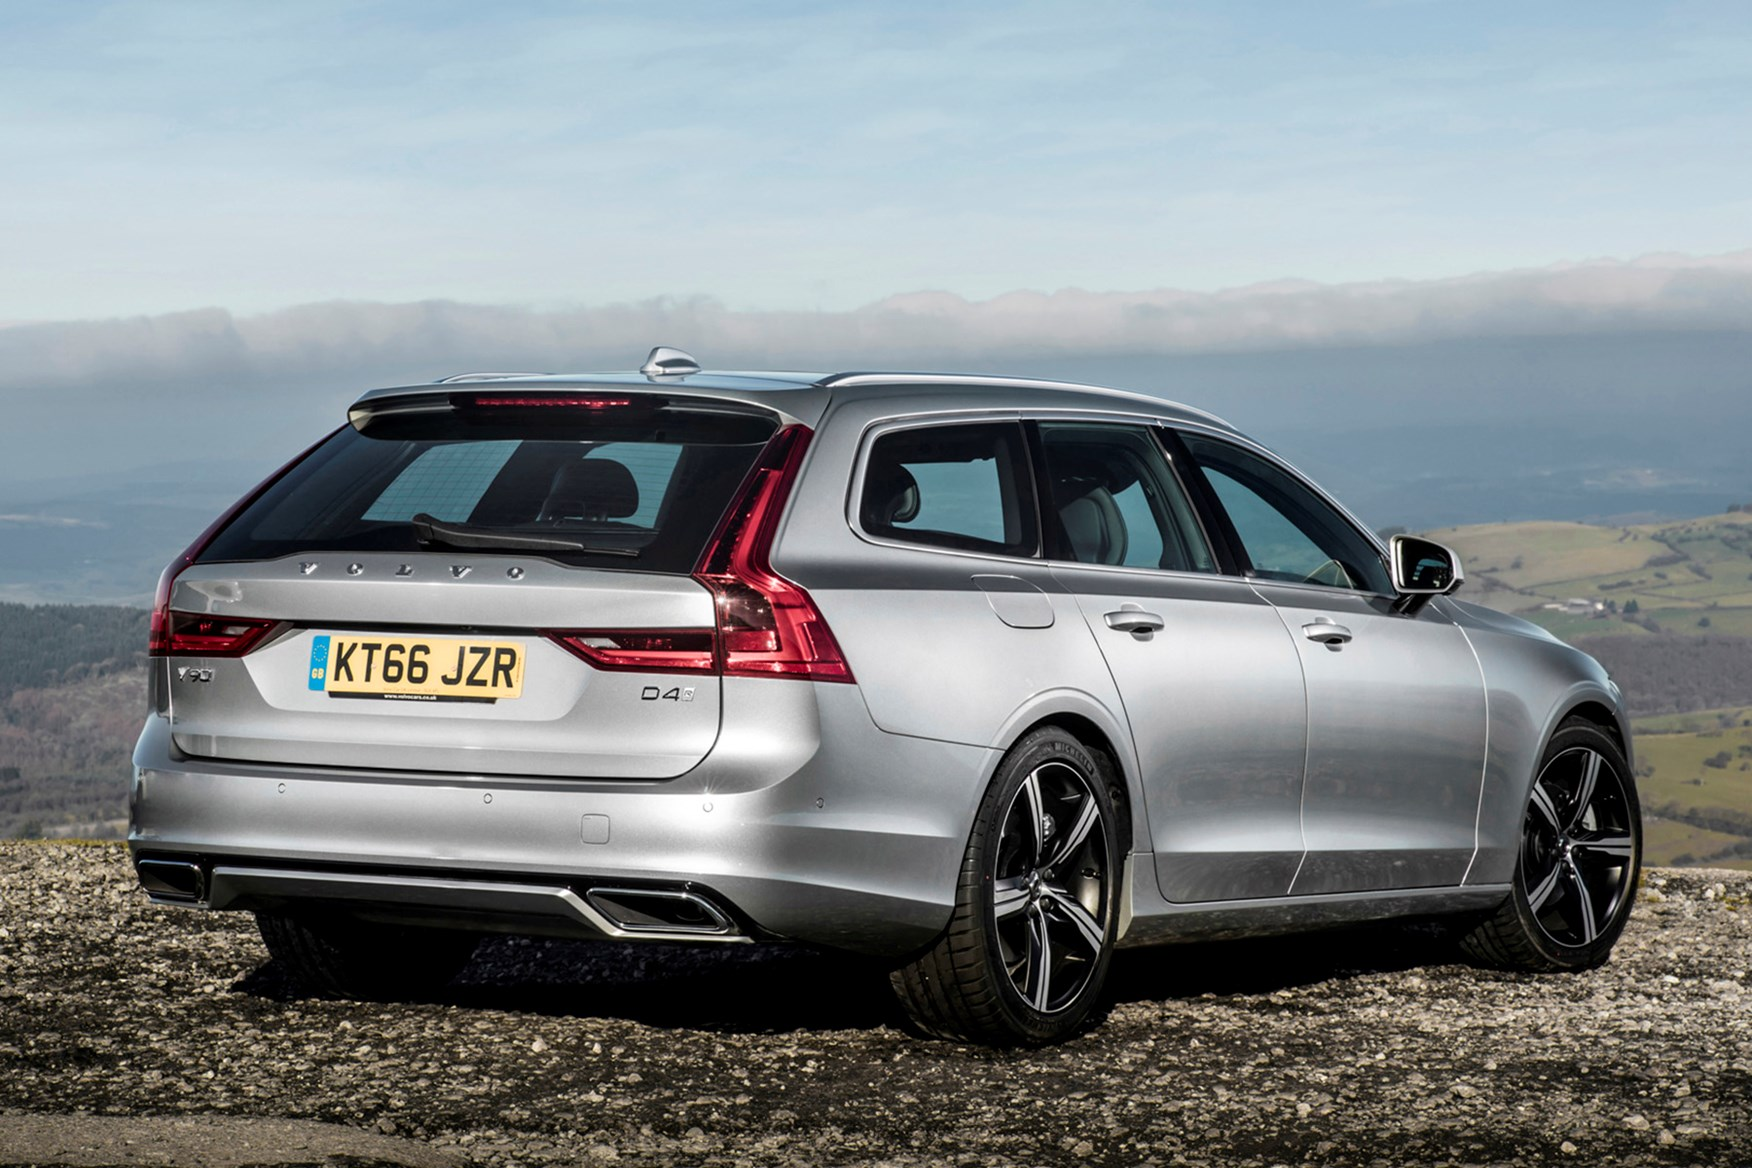 Silver 2016 Volvo V90 rear three-quarter